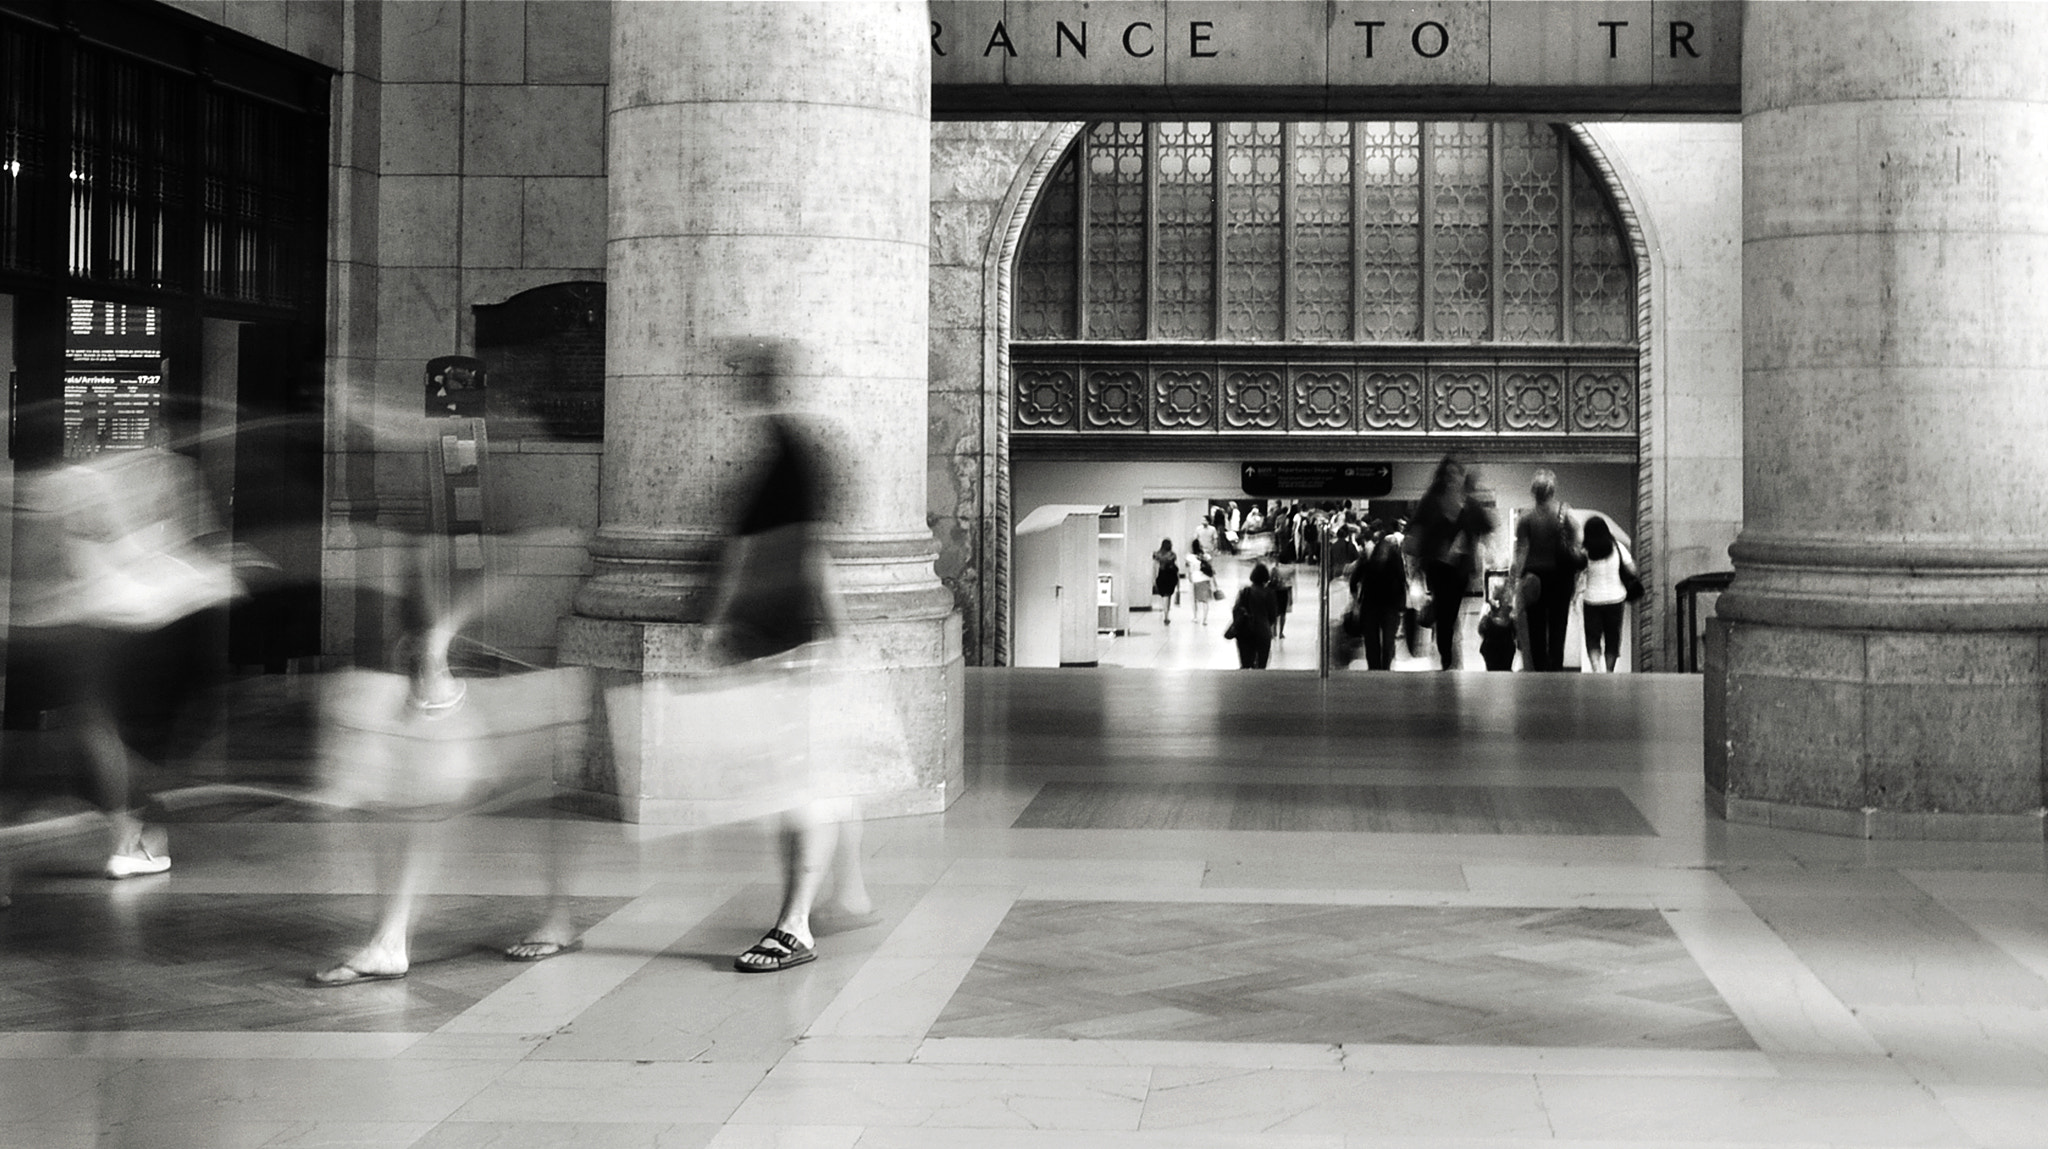 Photograph ANCE TO TR by amanda large on 500px